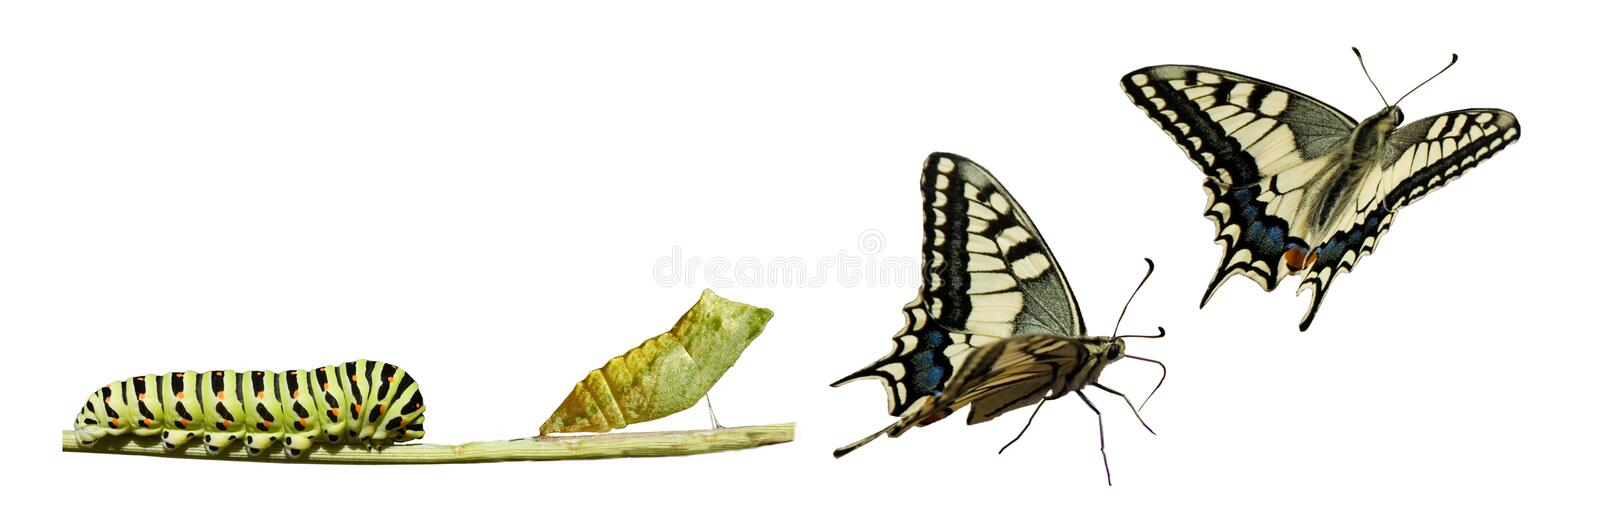 Metamorfose de Swallowtail foto de stock